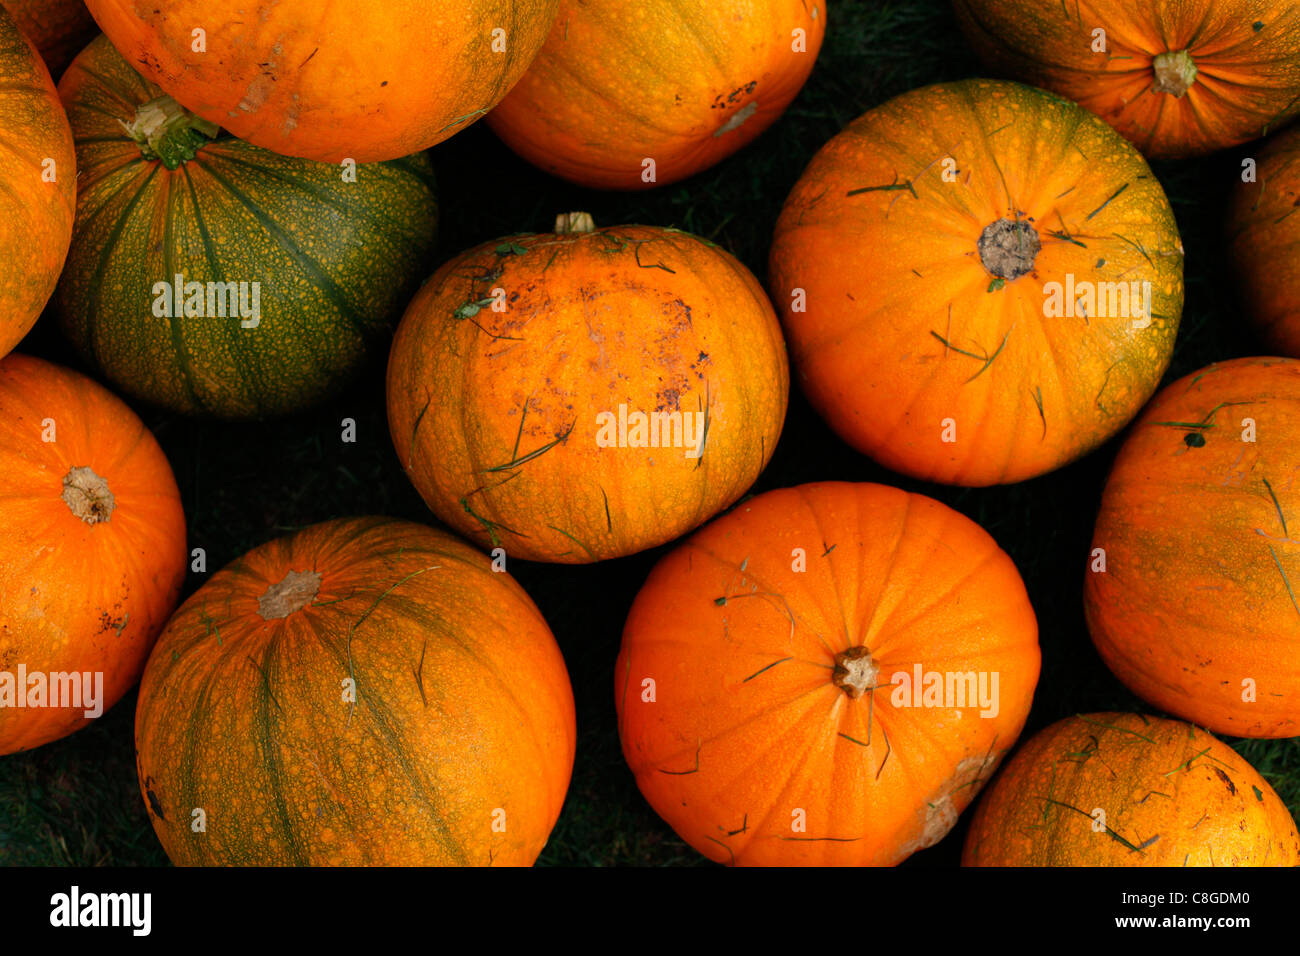 Pumpkins - Stock Image